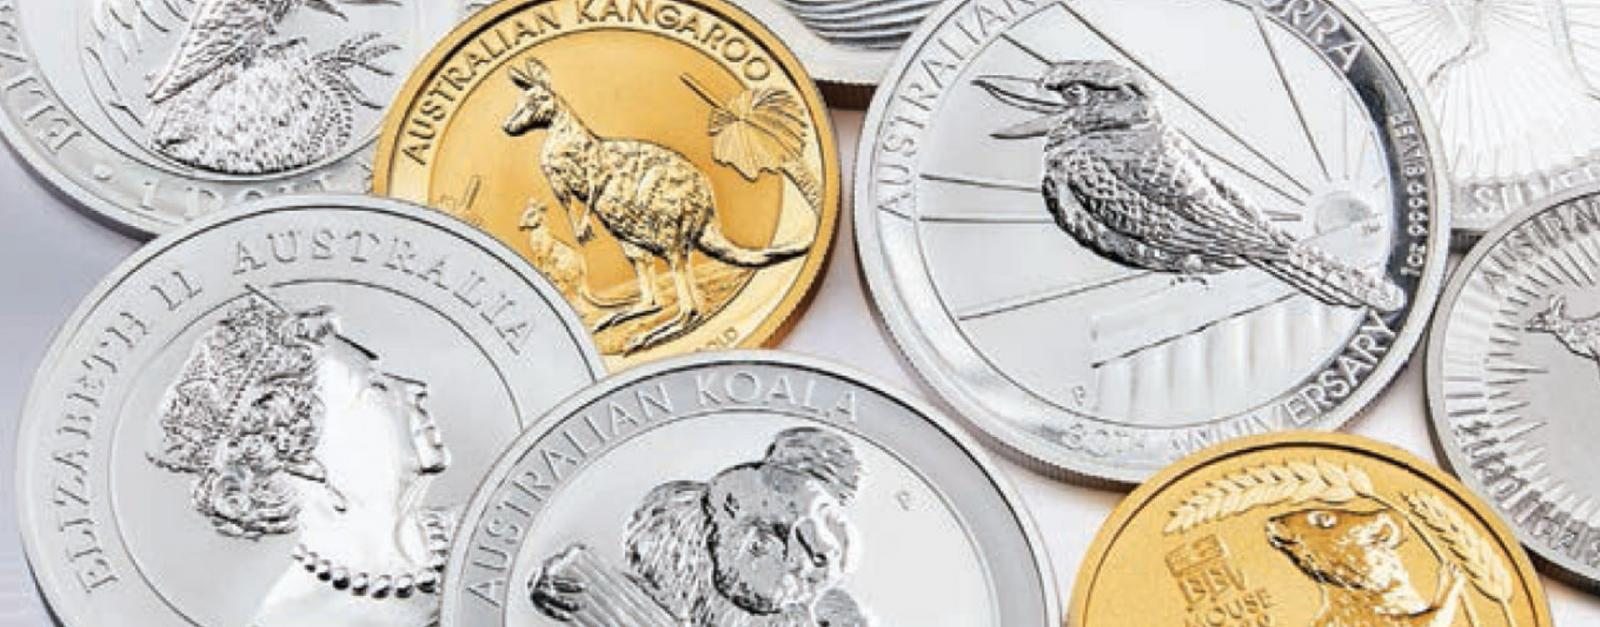 Perth Mint Bullion